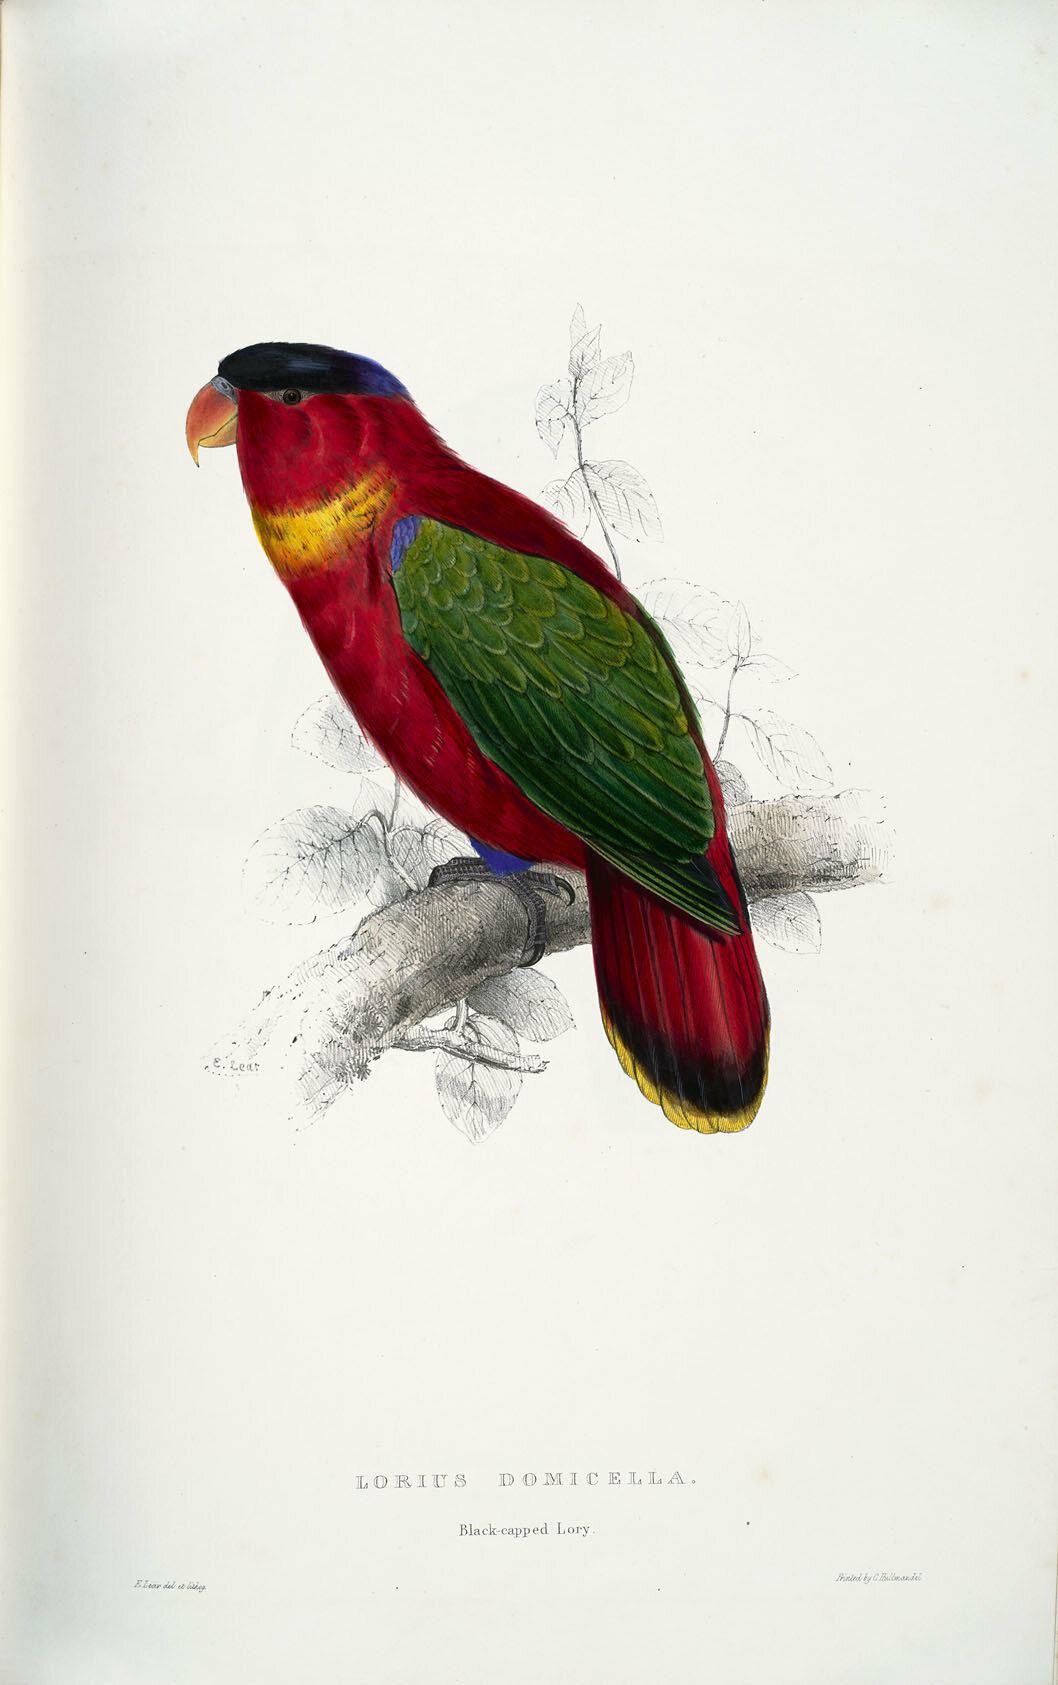 Lear eventually got the black-capped lory right.